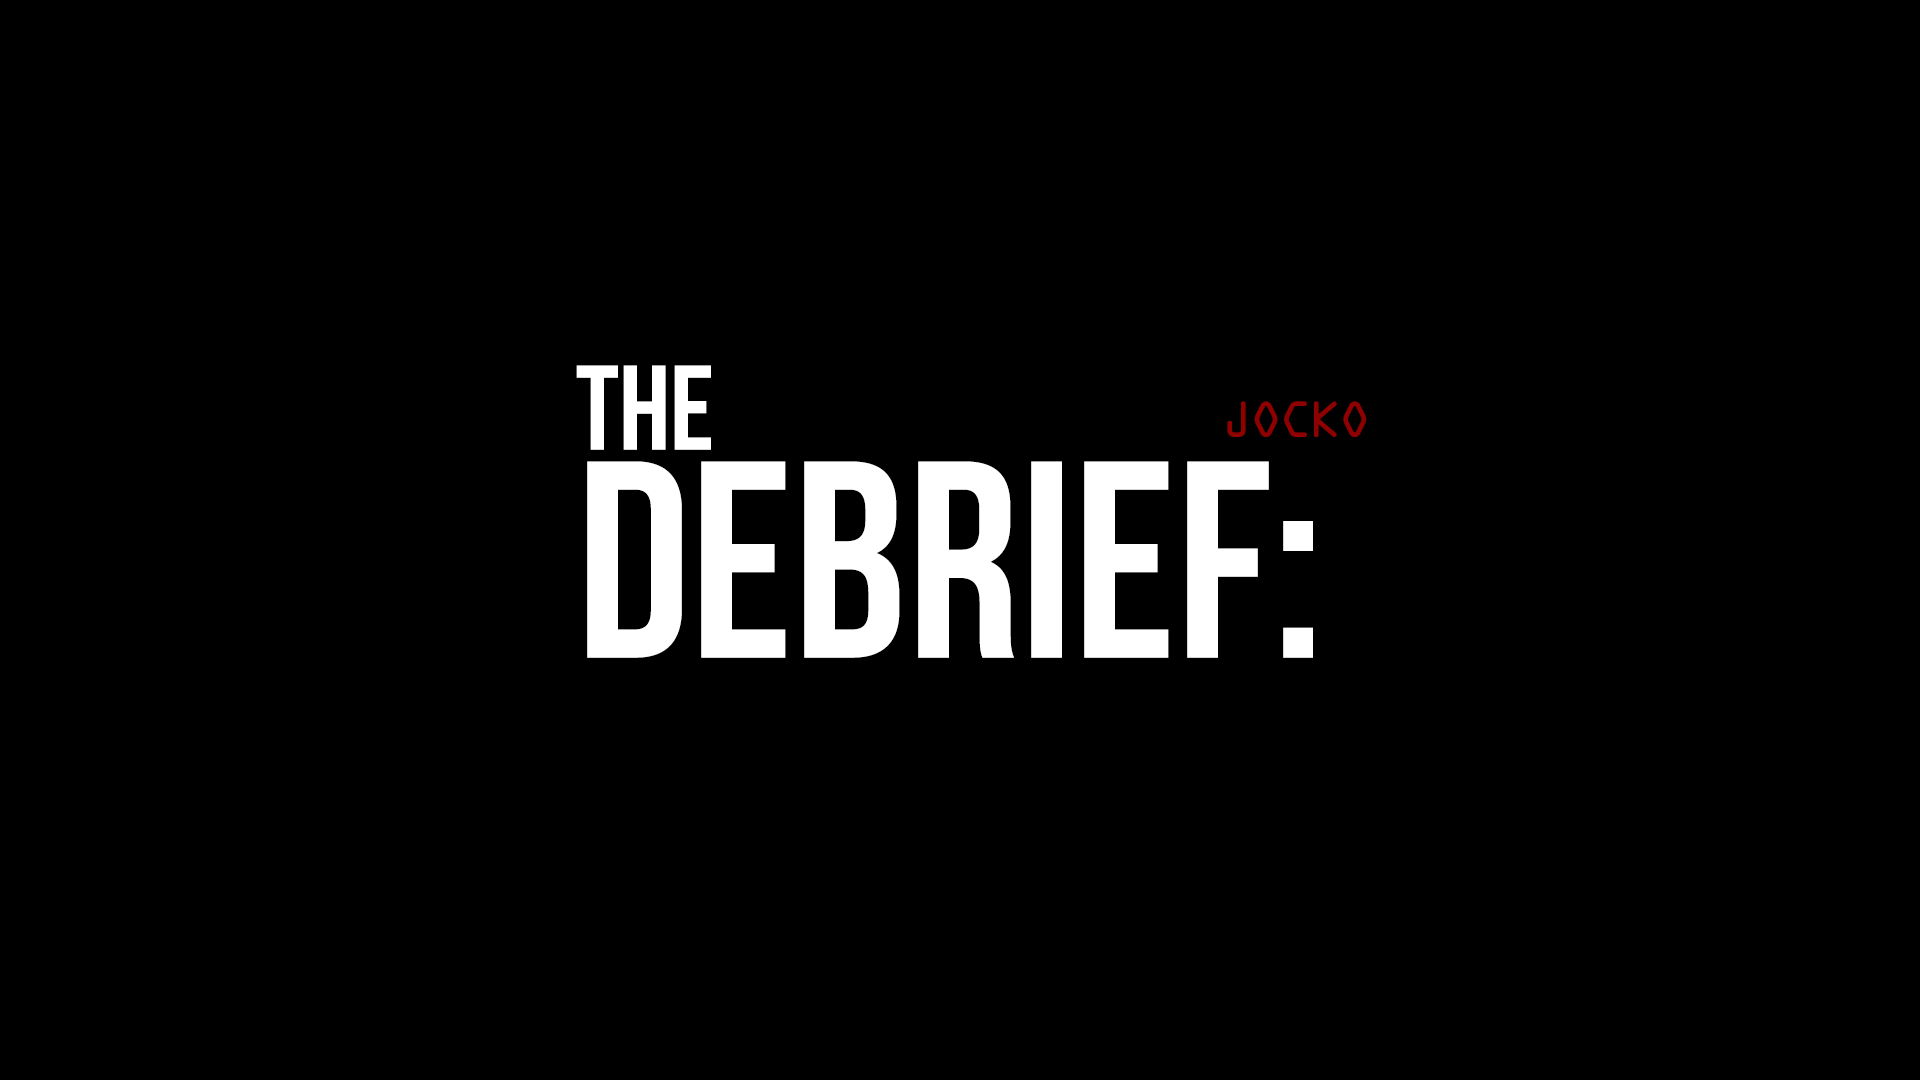 The Debrief w/ Jocko and Dave Berke #5: How to Announce Your Presence as The New Boss